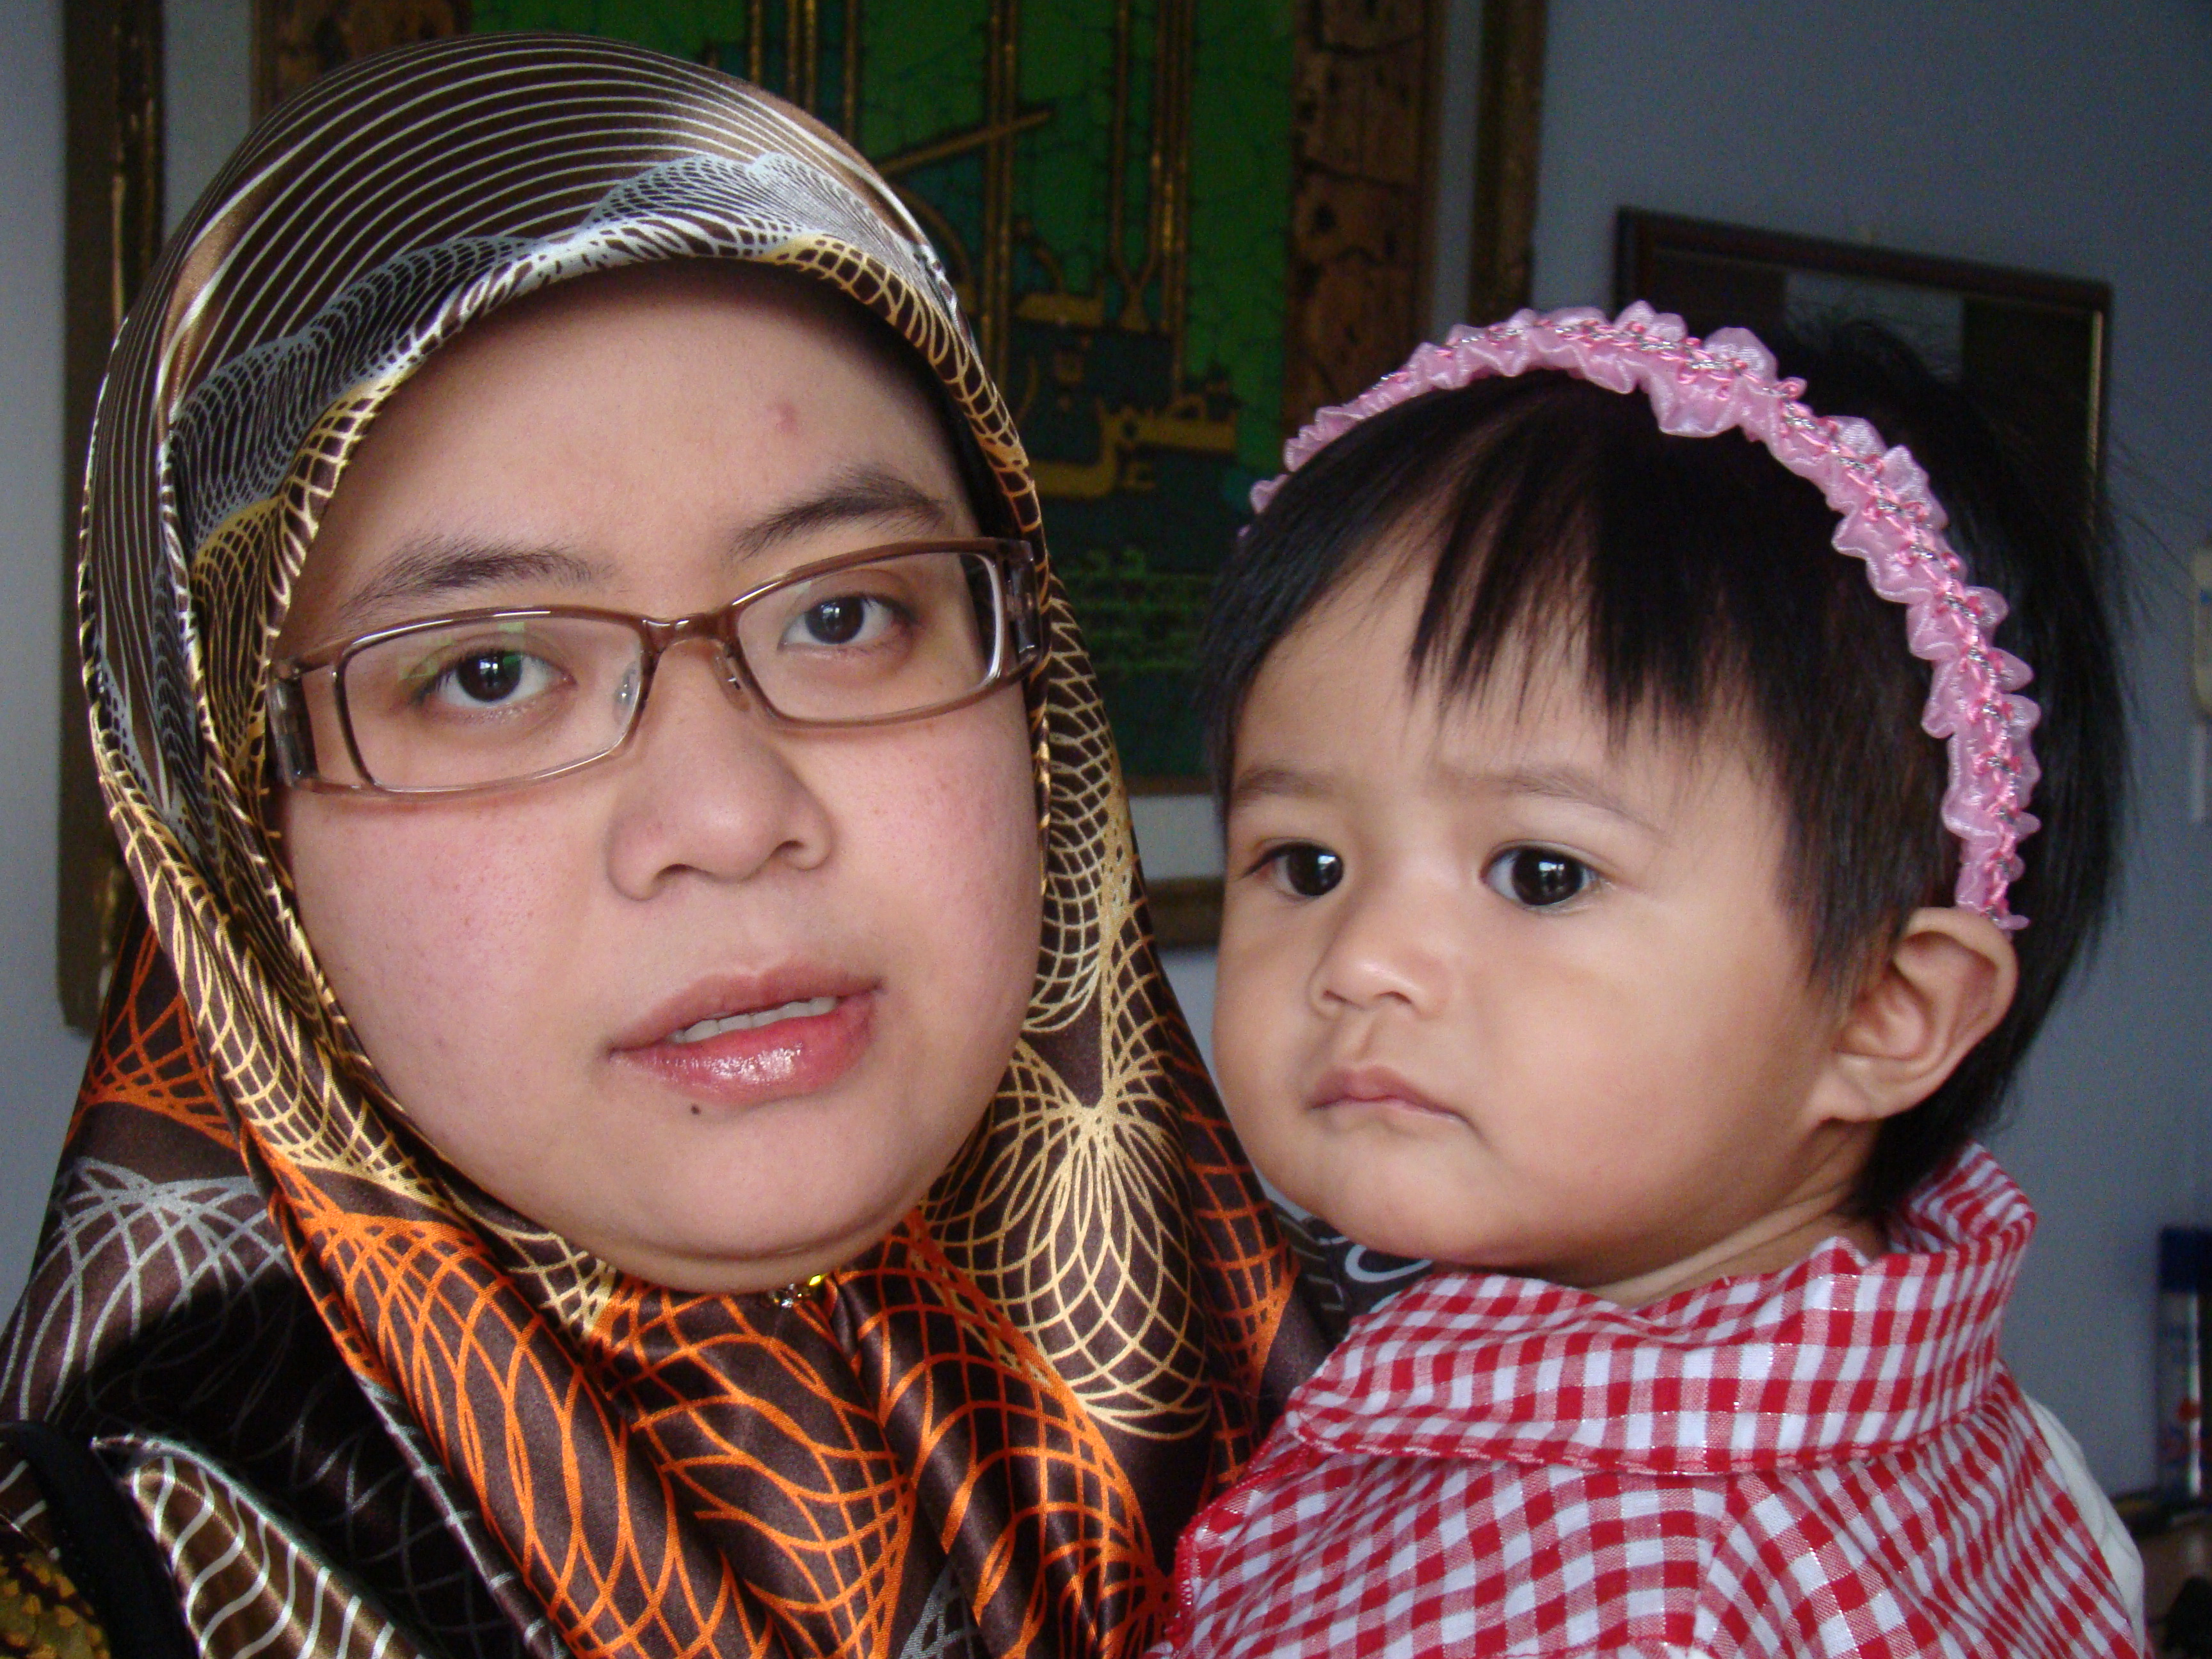 With Umi, 6.30 am today, 10th. June, 2009